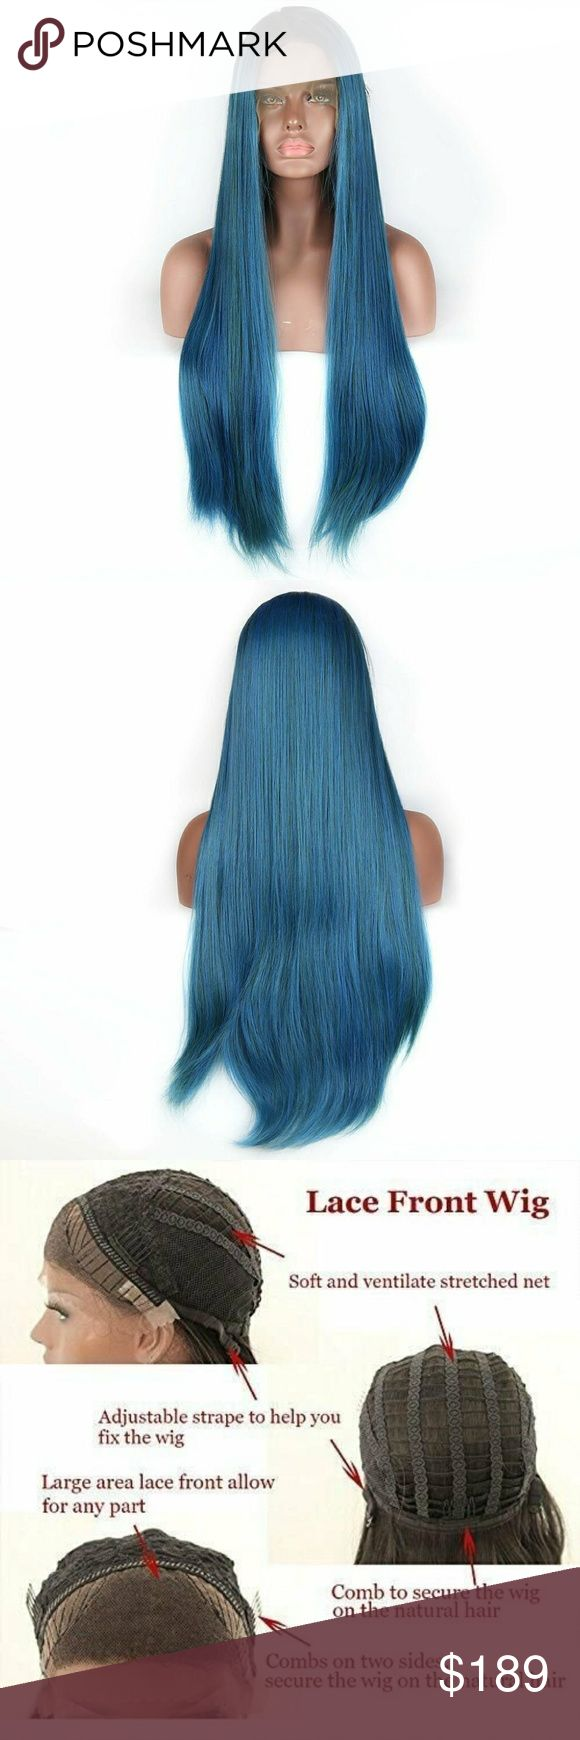 "Ombre Blue Lace Front Wig 24-28 inches Natural Looking: Human Hair Blend handtied 2.5"" lace Fashion Style:Long Straight Glueless Lace Front Wig(Kind Reminder: Slightly Color Difference between Different Monitors) 22-28 inches. Flexible Fit:Average Cap Size In Circumference 22.5 Inches,can be slightly adjusted with Adjustable Straps and 3 Combs to fit different size head Color: As pictured. Hair can be heated, curled, straightened, and flat iron, just spray with water first.           ap37omb…"